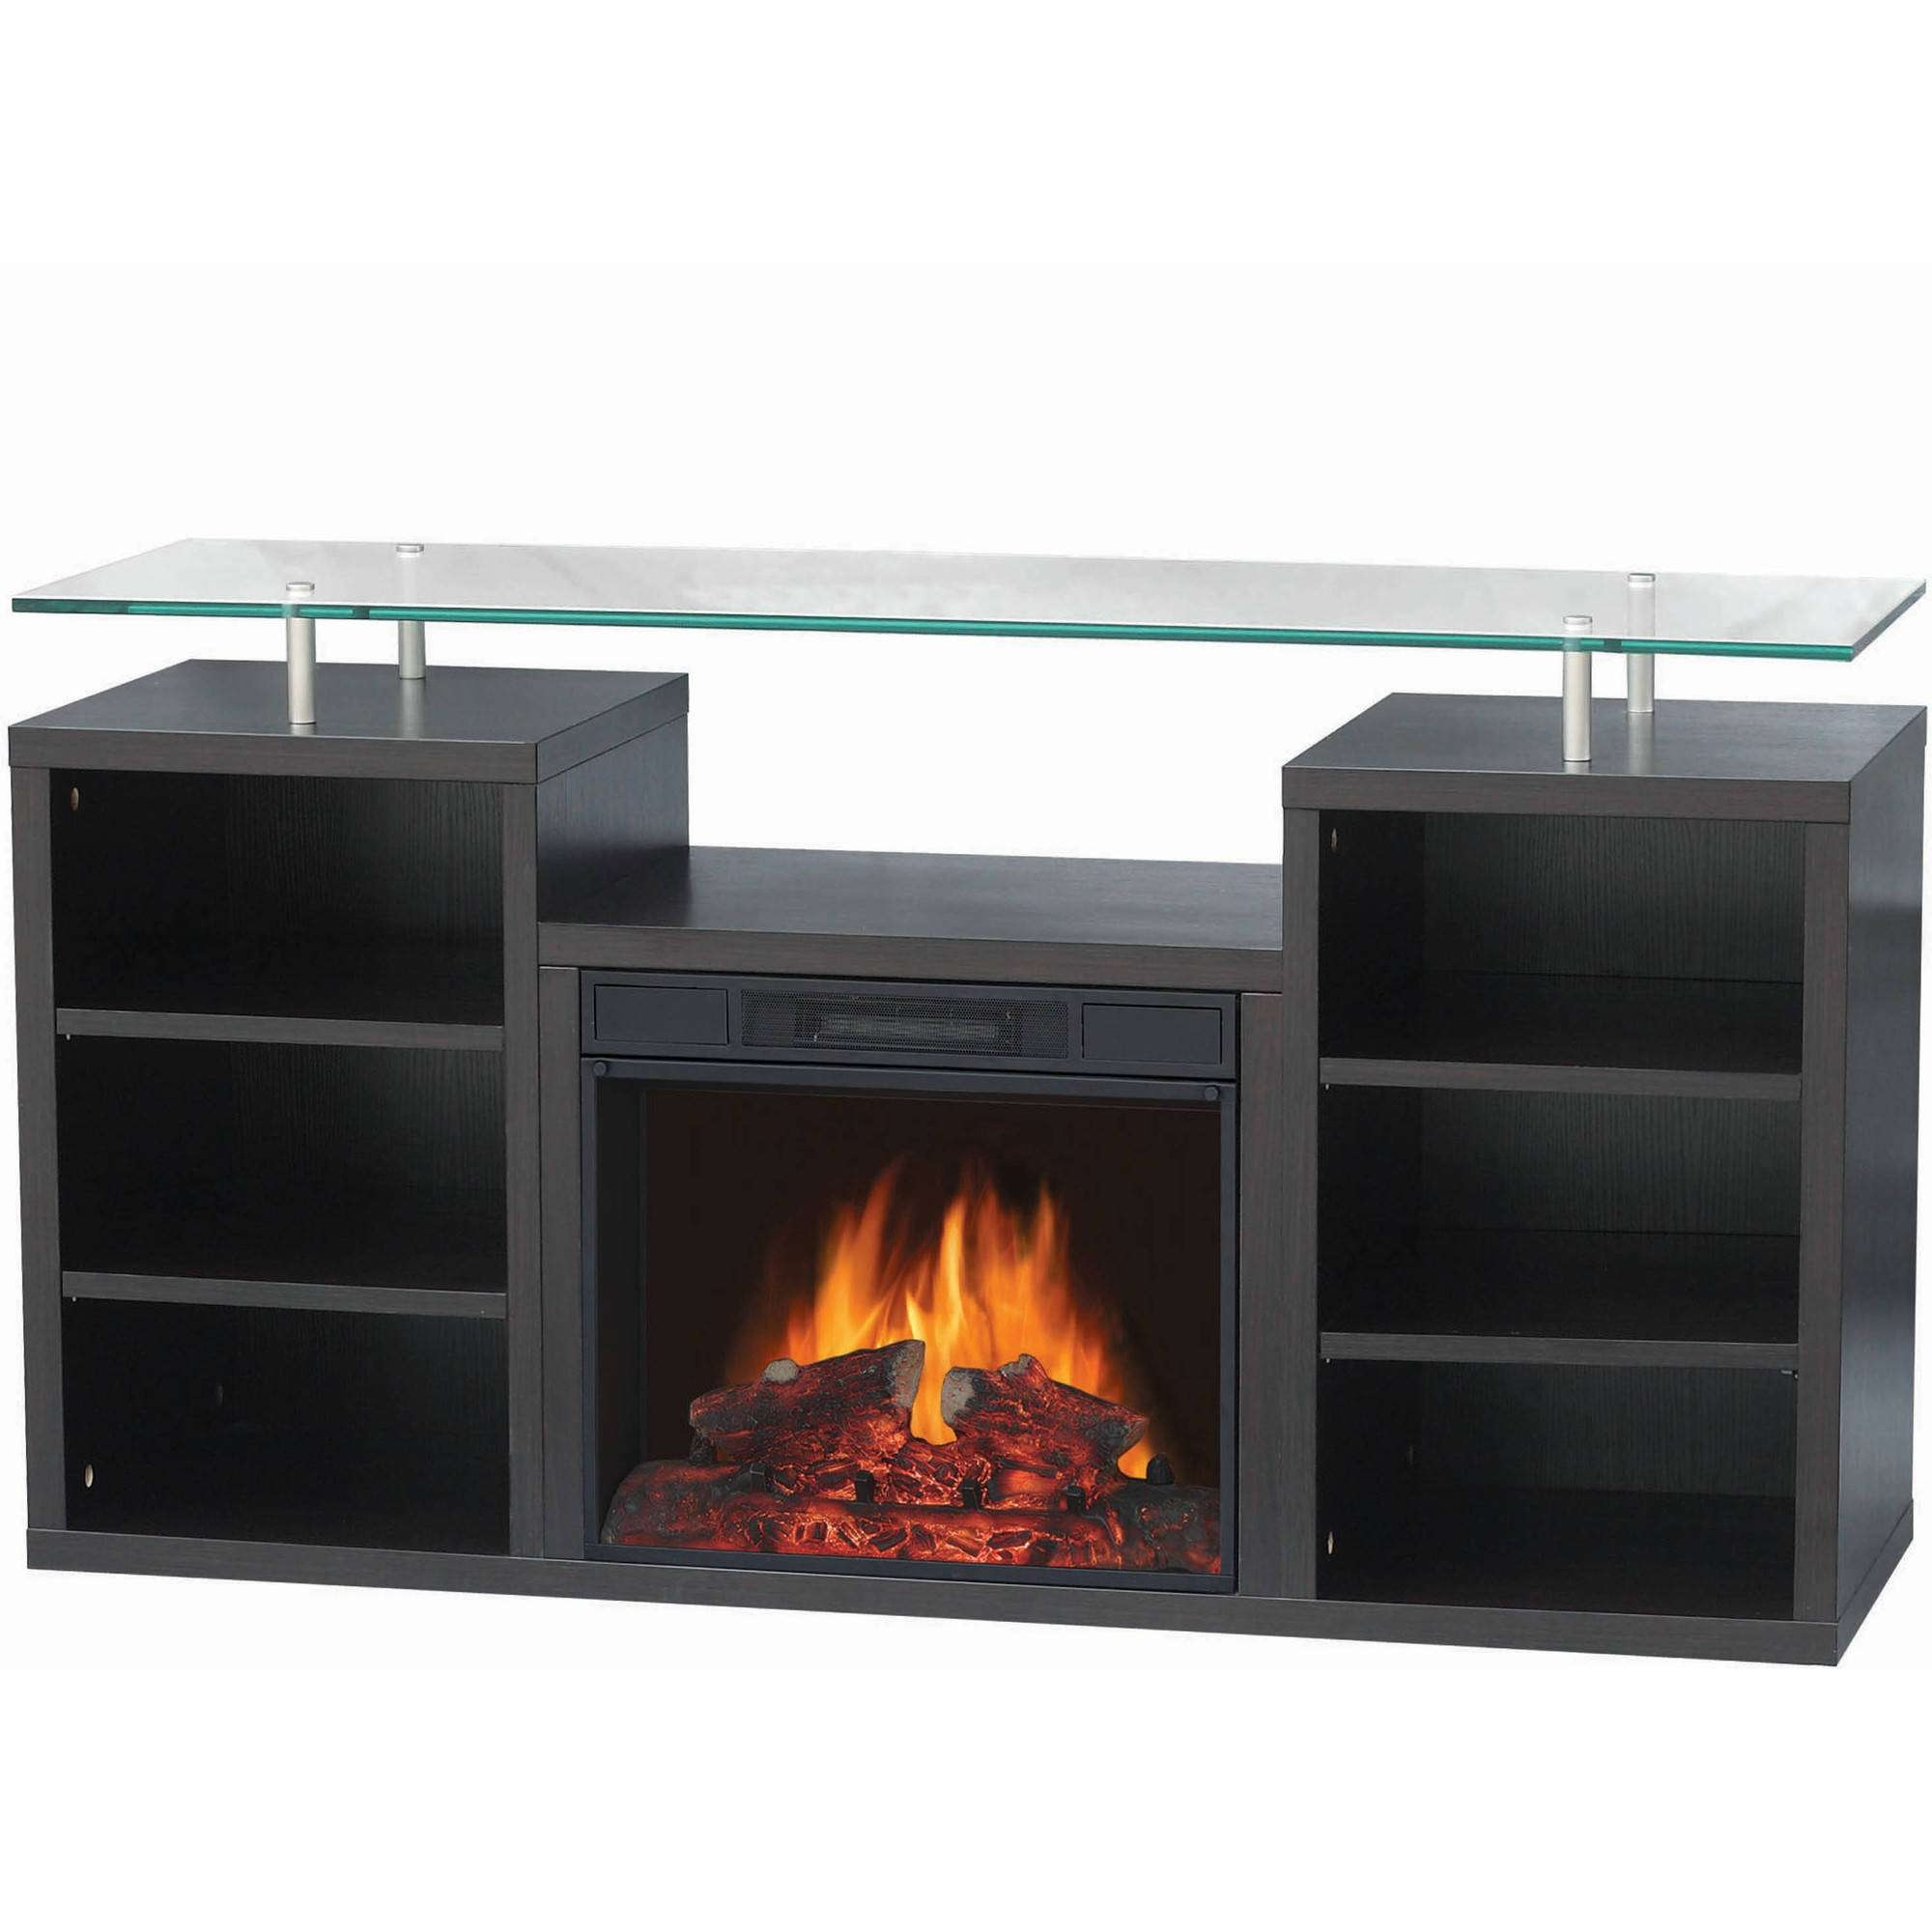 15 best ideas of 50 inch fireplace tv stands. Black Bedroom Furniture Sets. Home Design Ideas